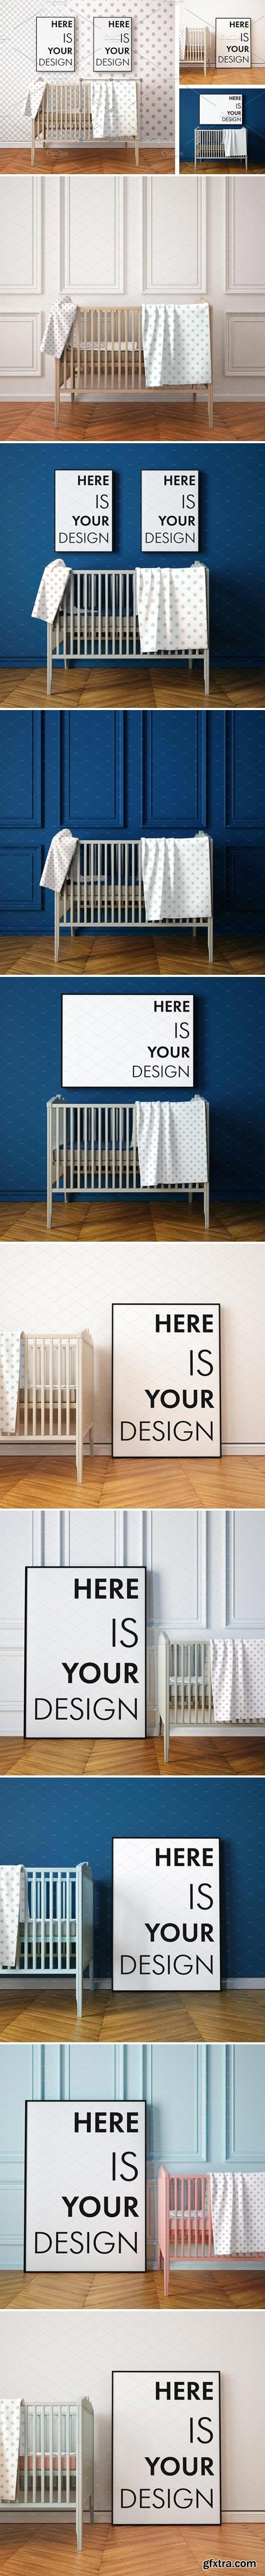 CM - 10 Mockups children's room 1534406